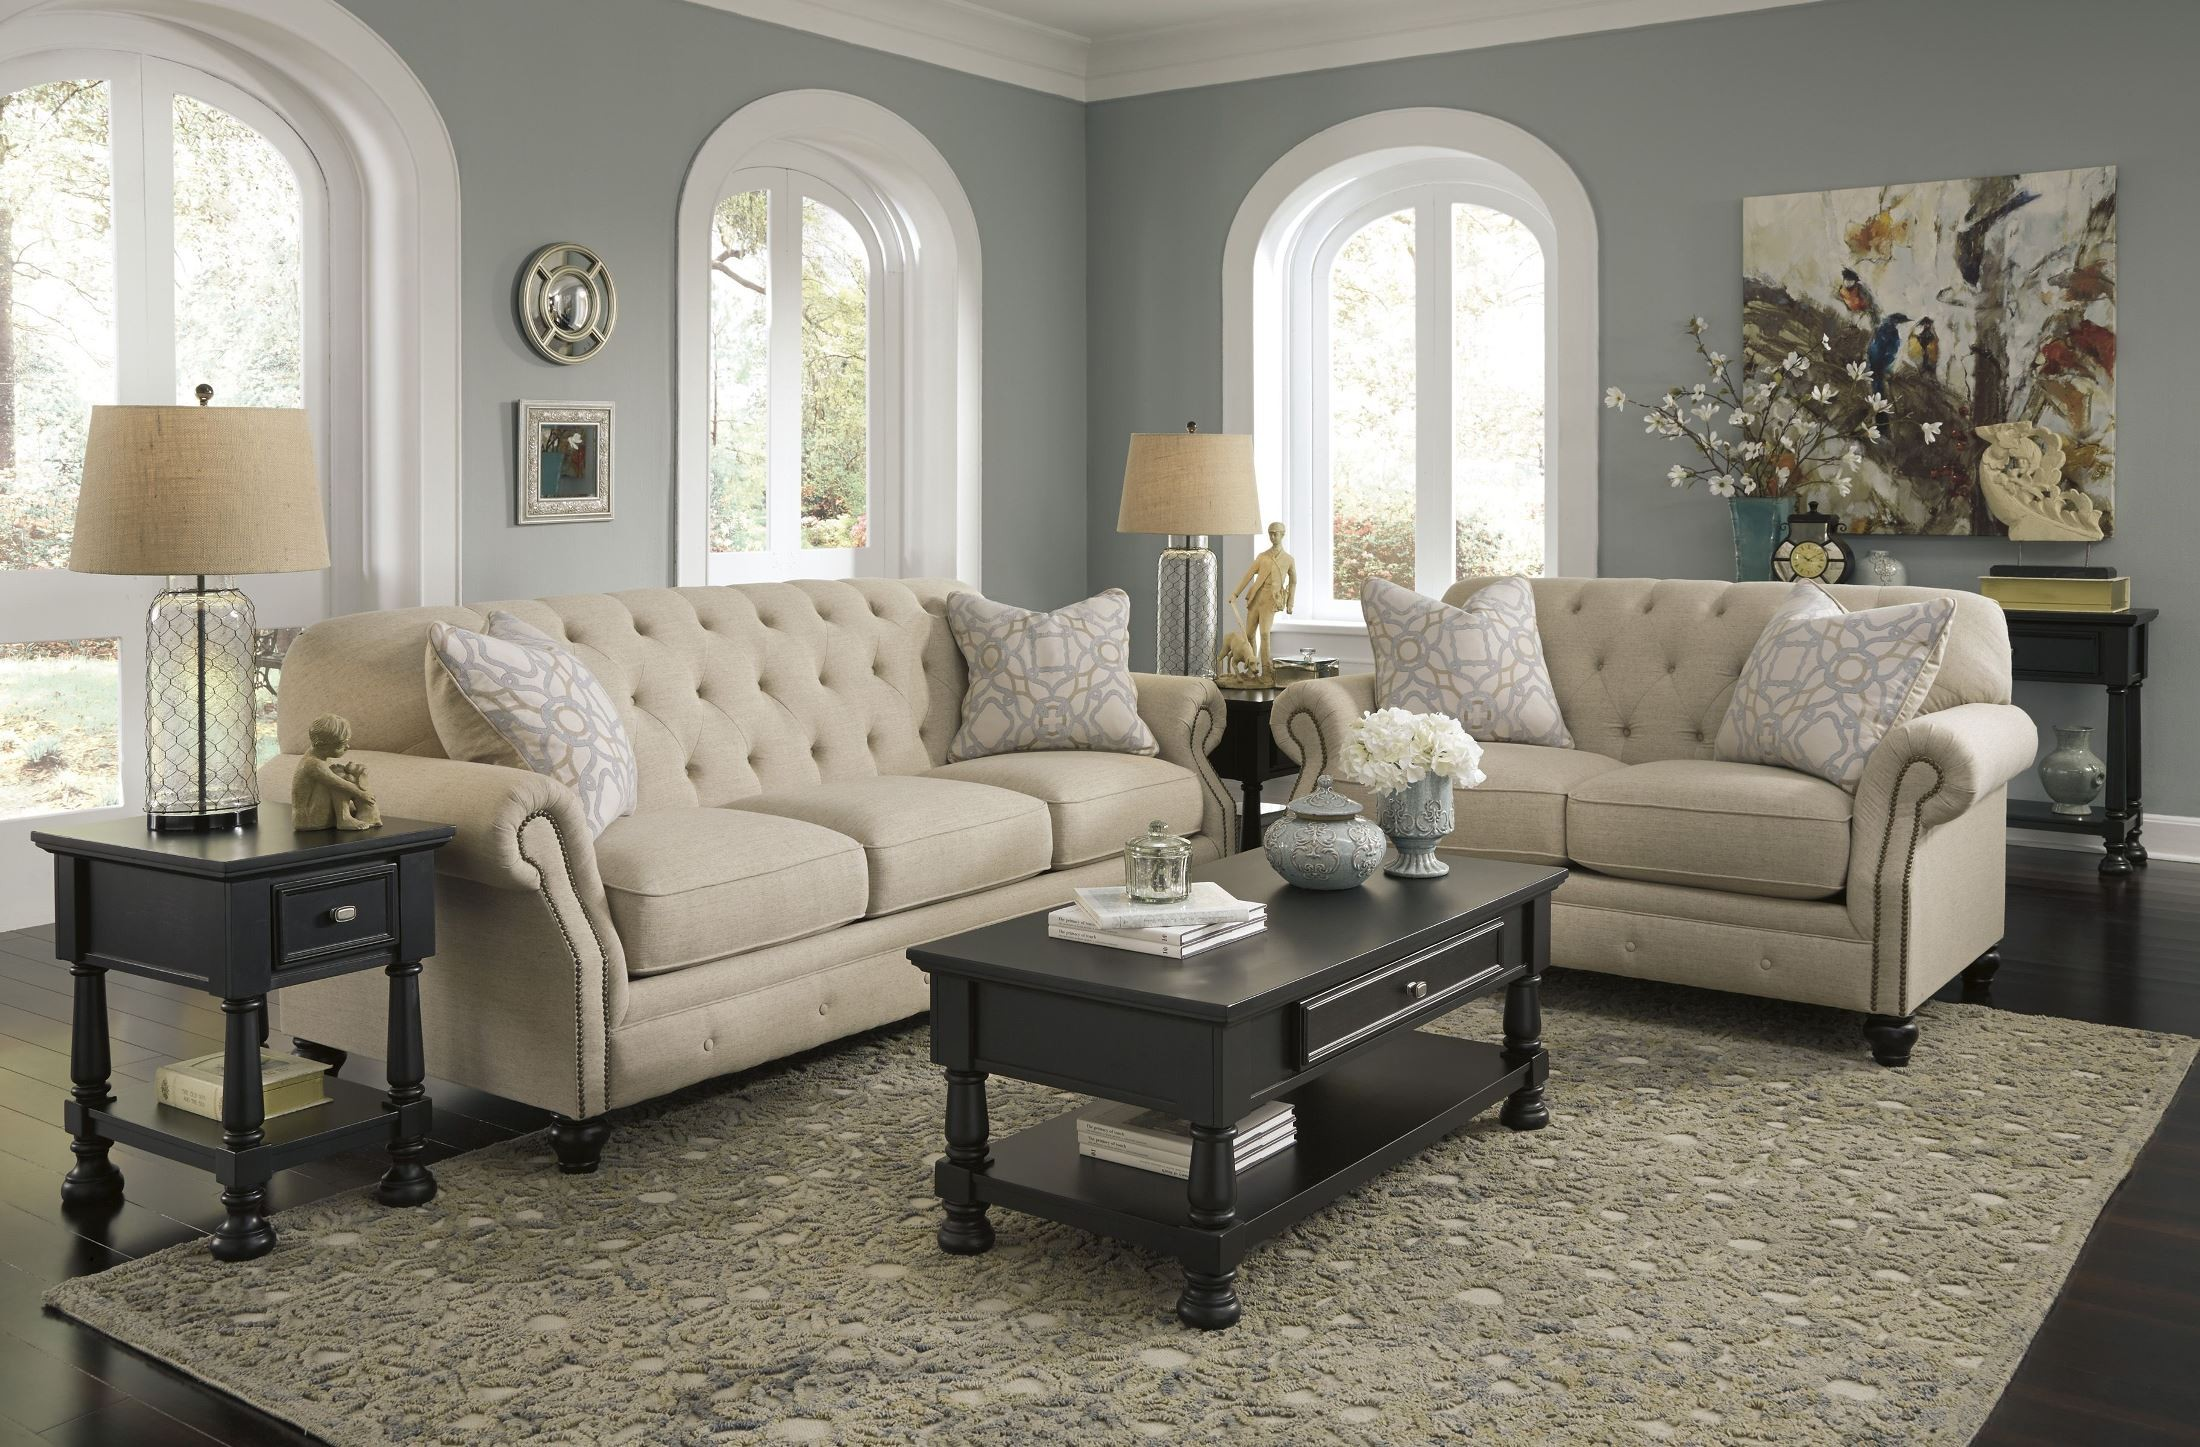 Kieran Natural Living Room Set From Ashley 4400038 Coleman Furniture